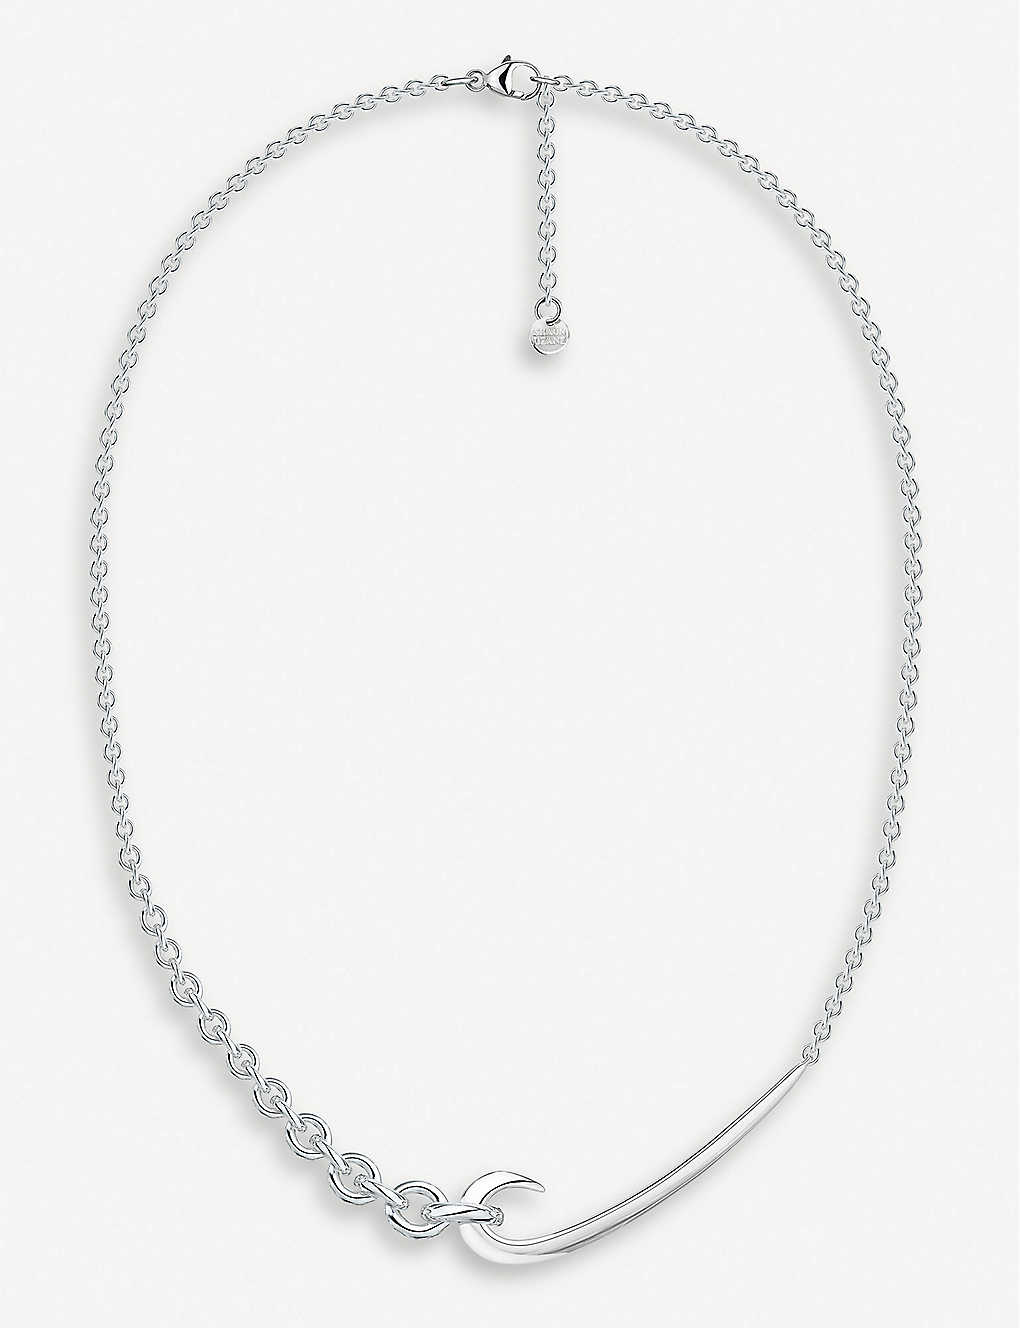 SHAUN LEANE: Hook chain sterling silver choker necklace